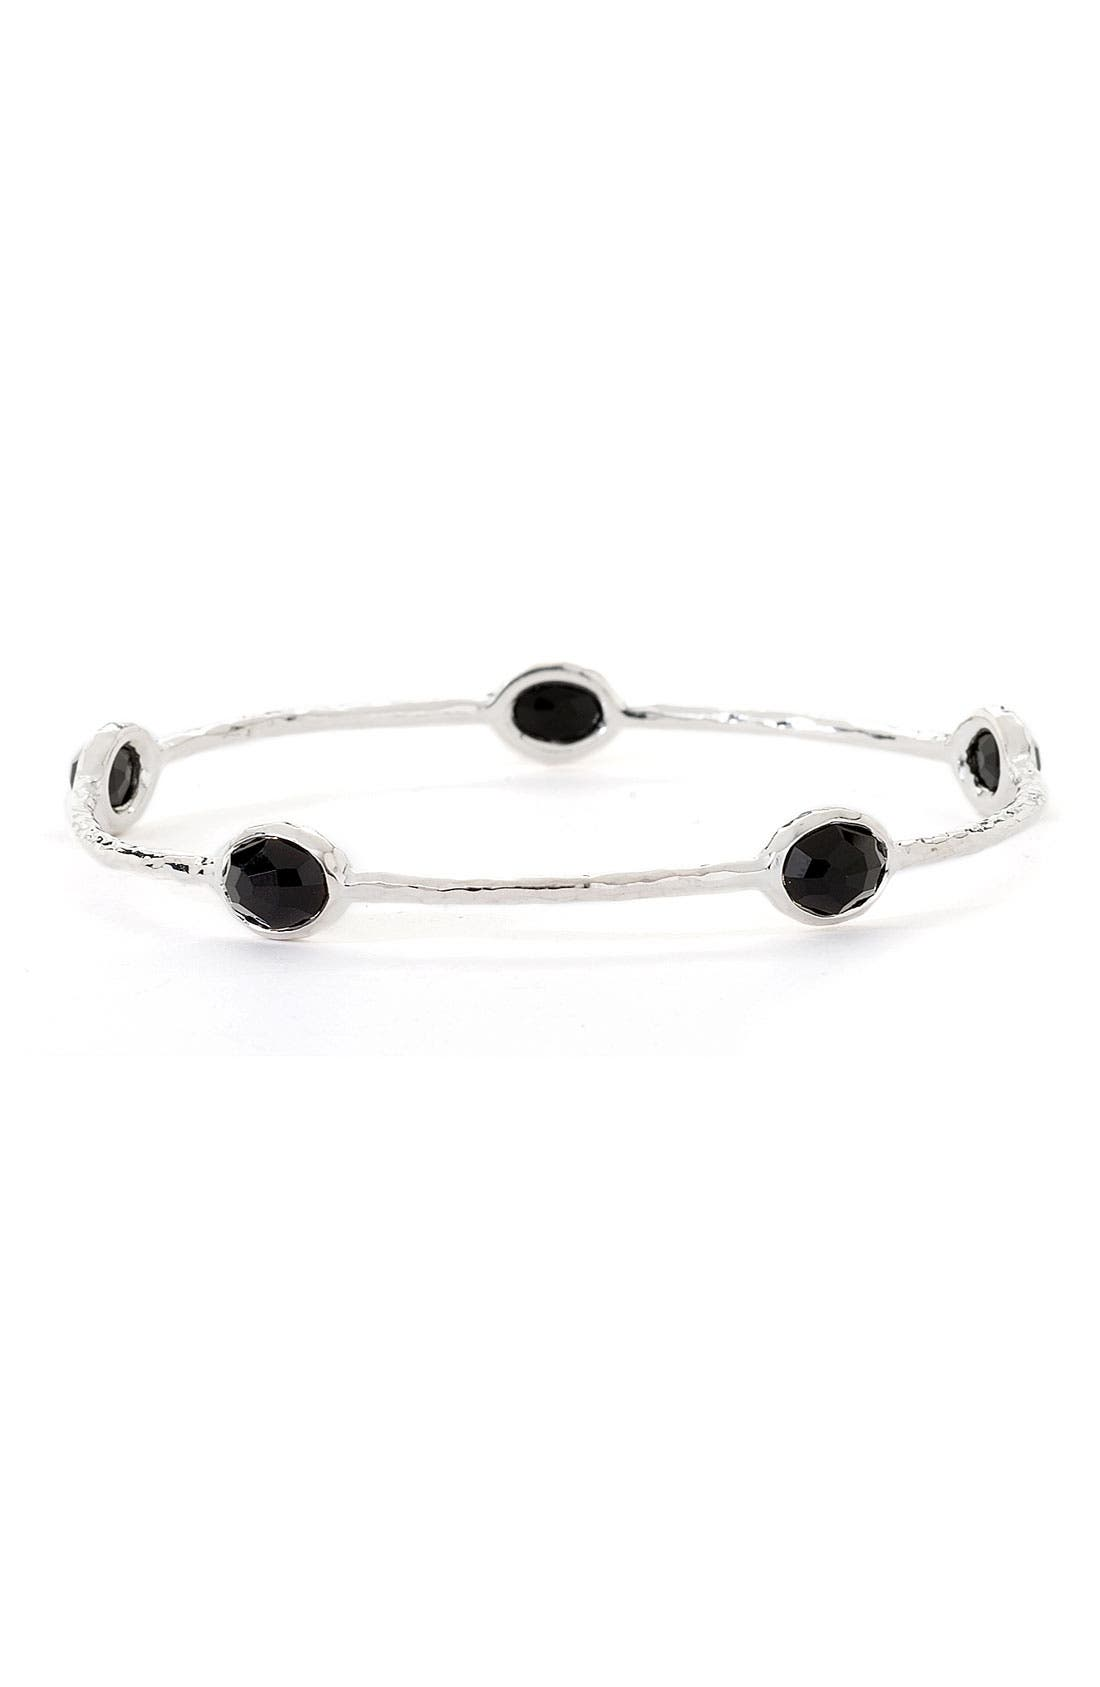 'Rock Candy' 5-Stone Sterling Silver Bangle,                             Main thumbnail 1, color,                             Silver - Black Onyx